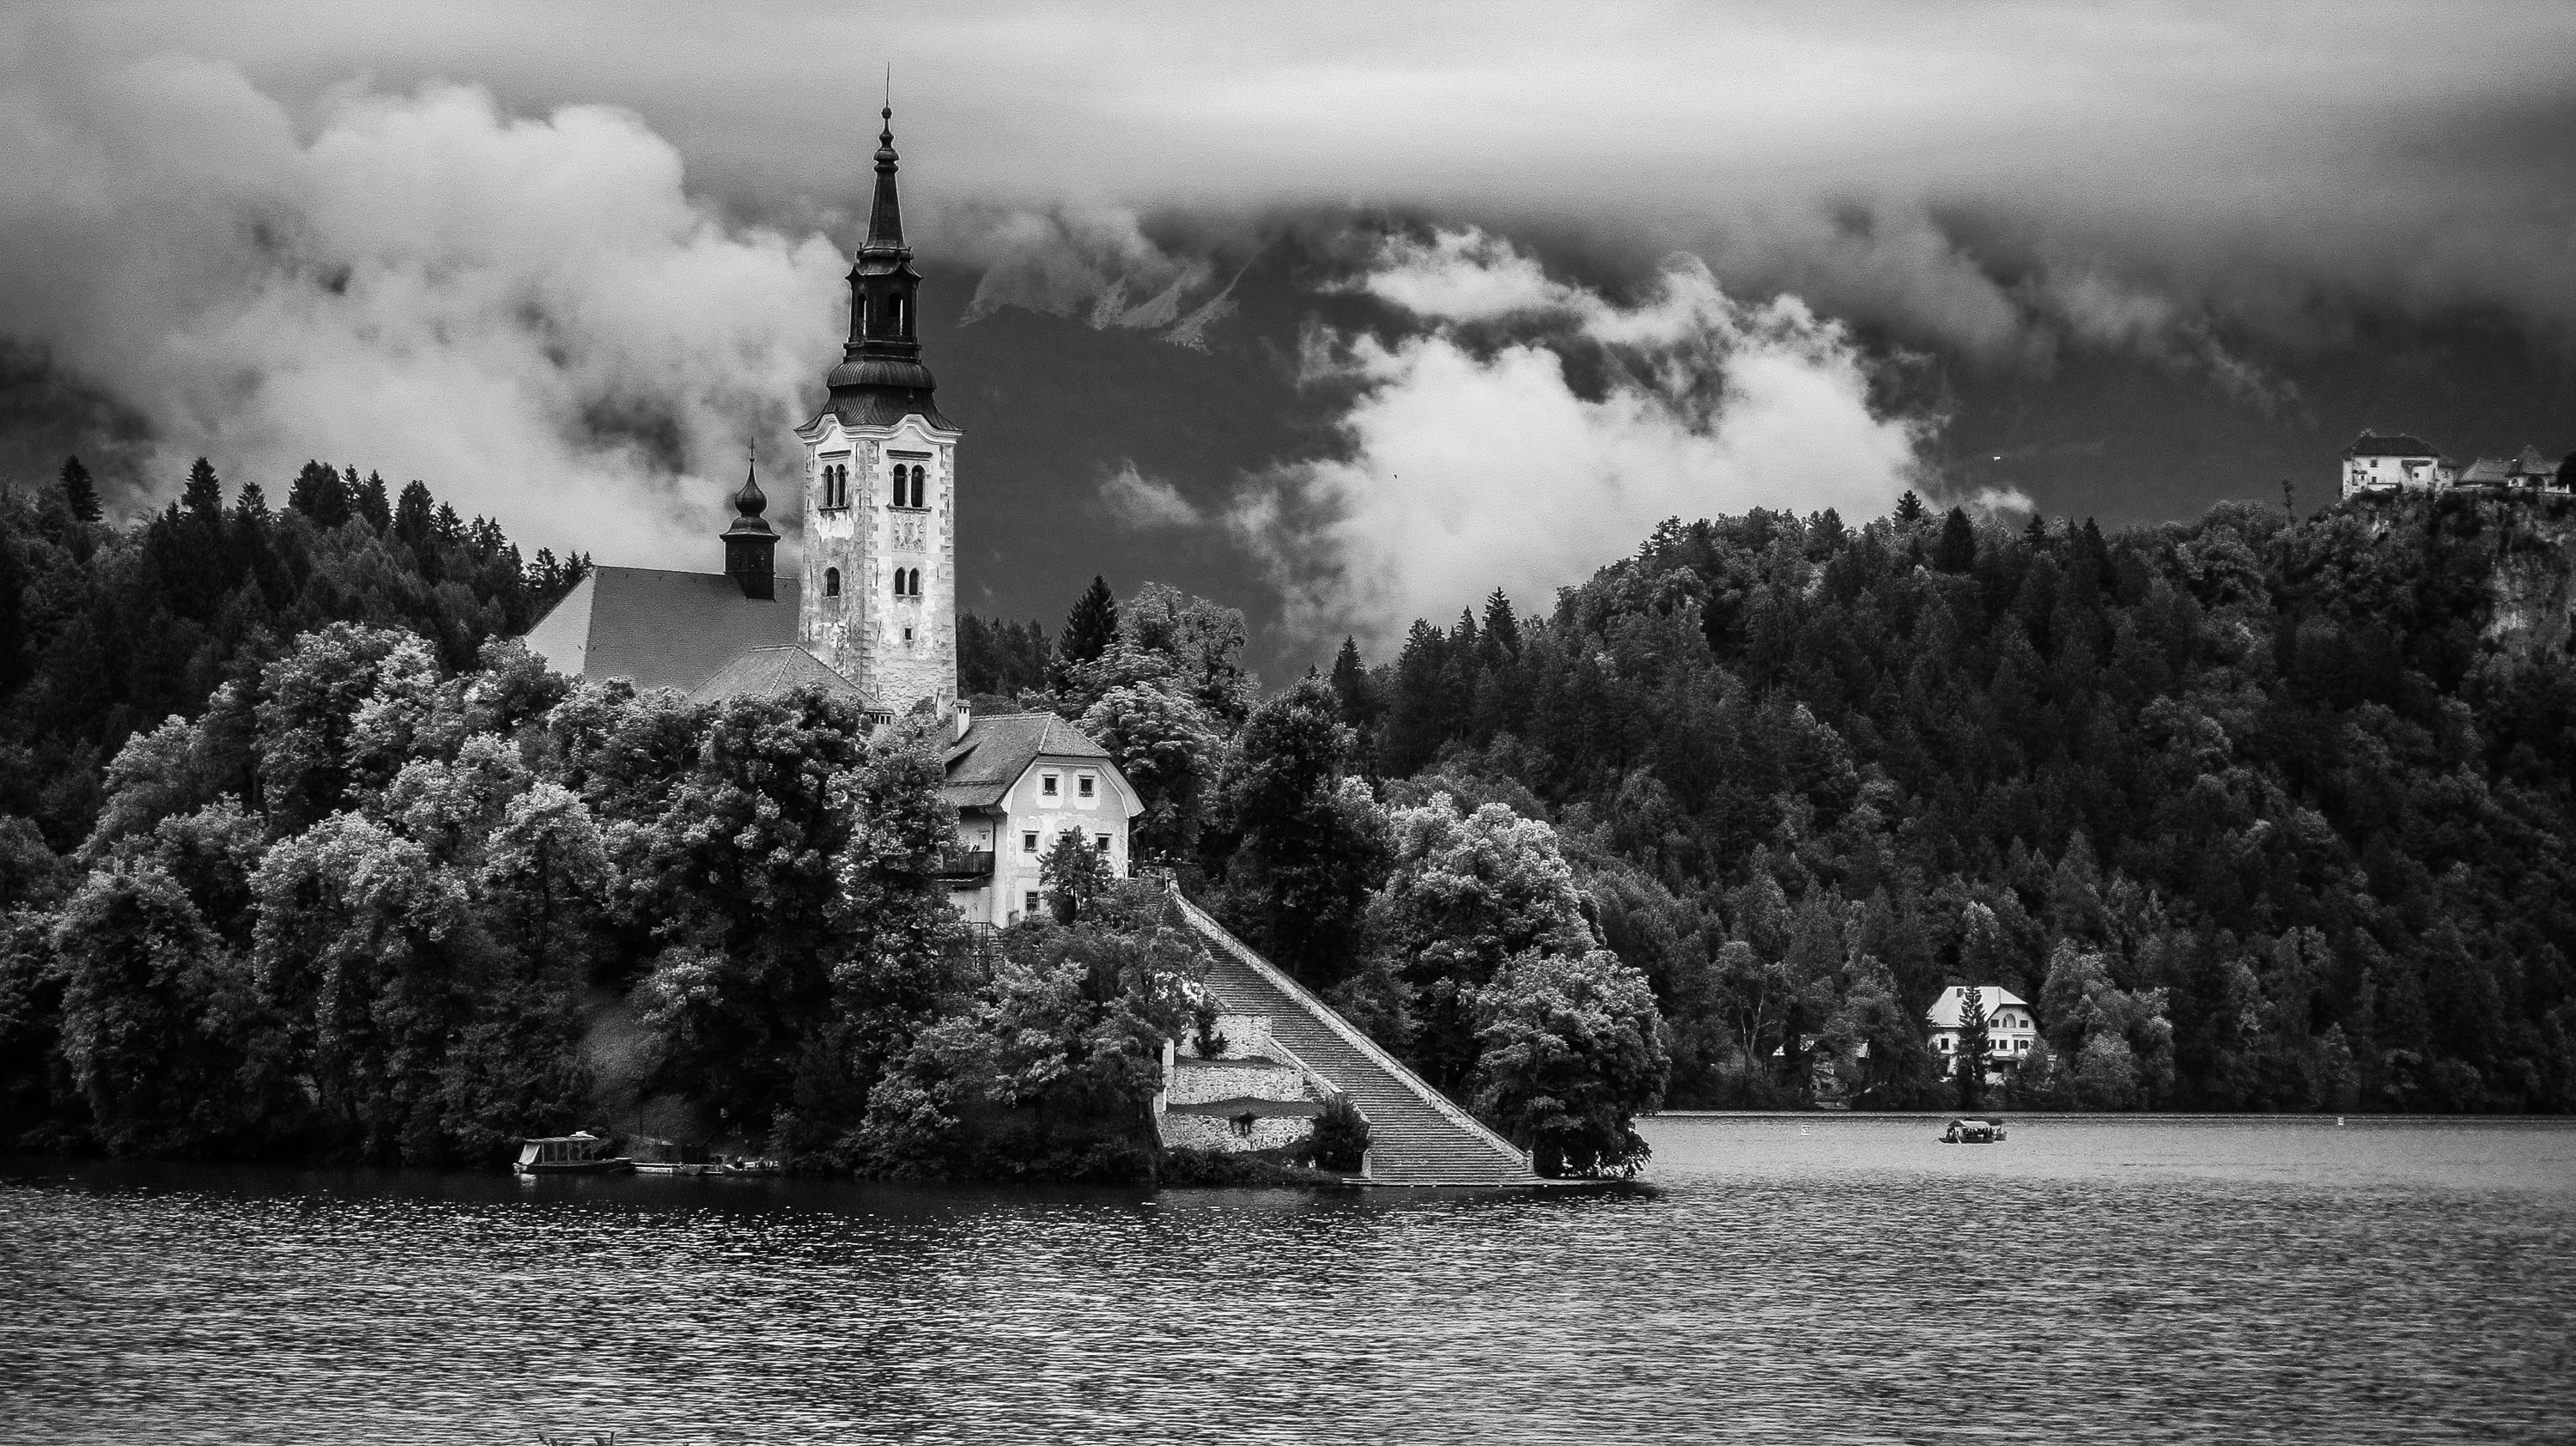 graycale photo of castle near body of water surrounded by trees